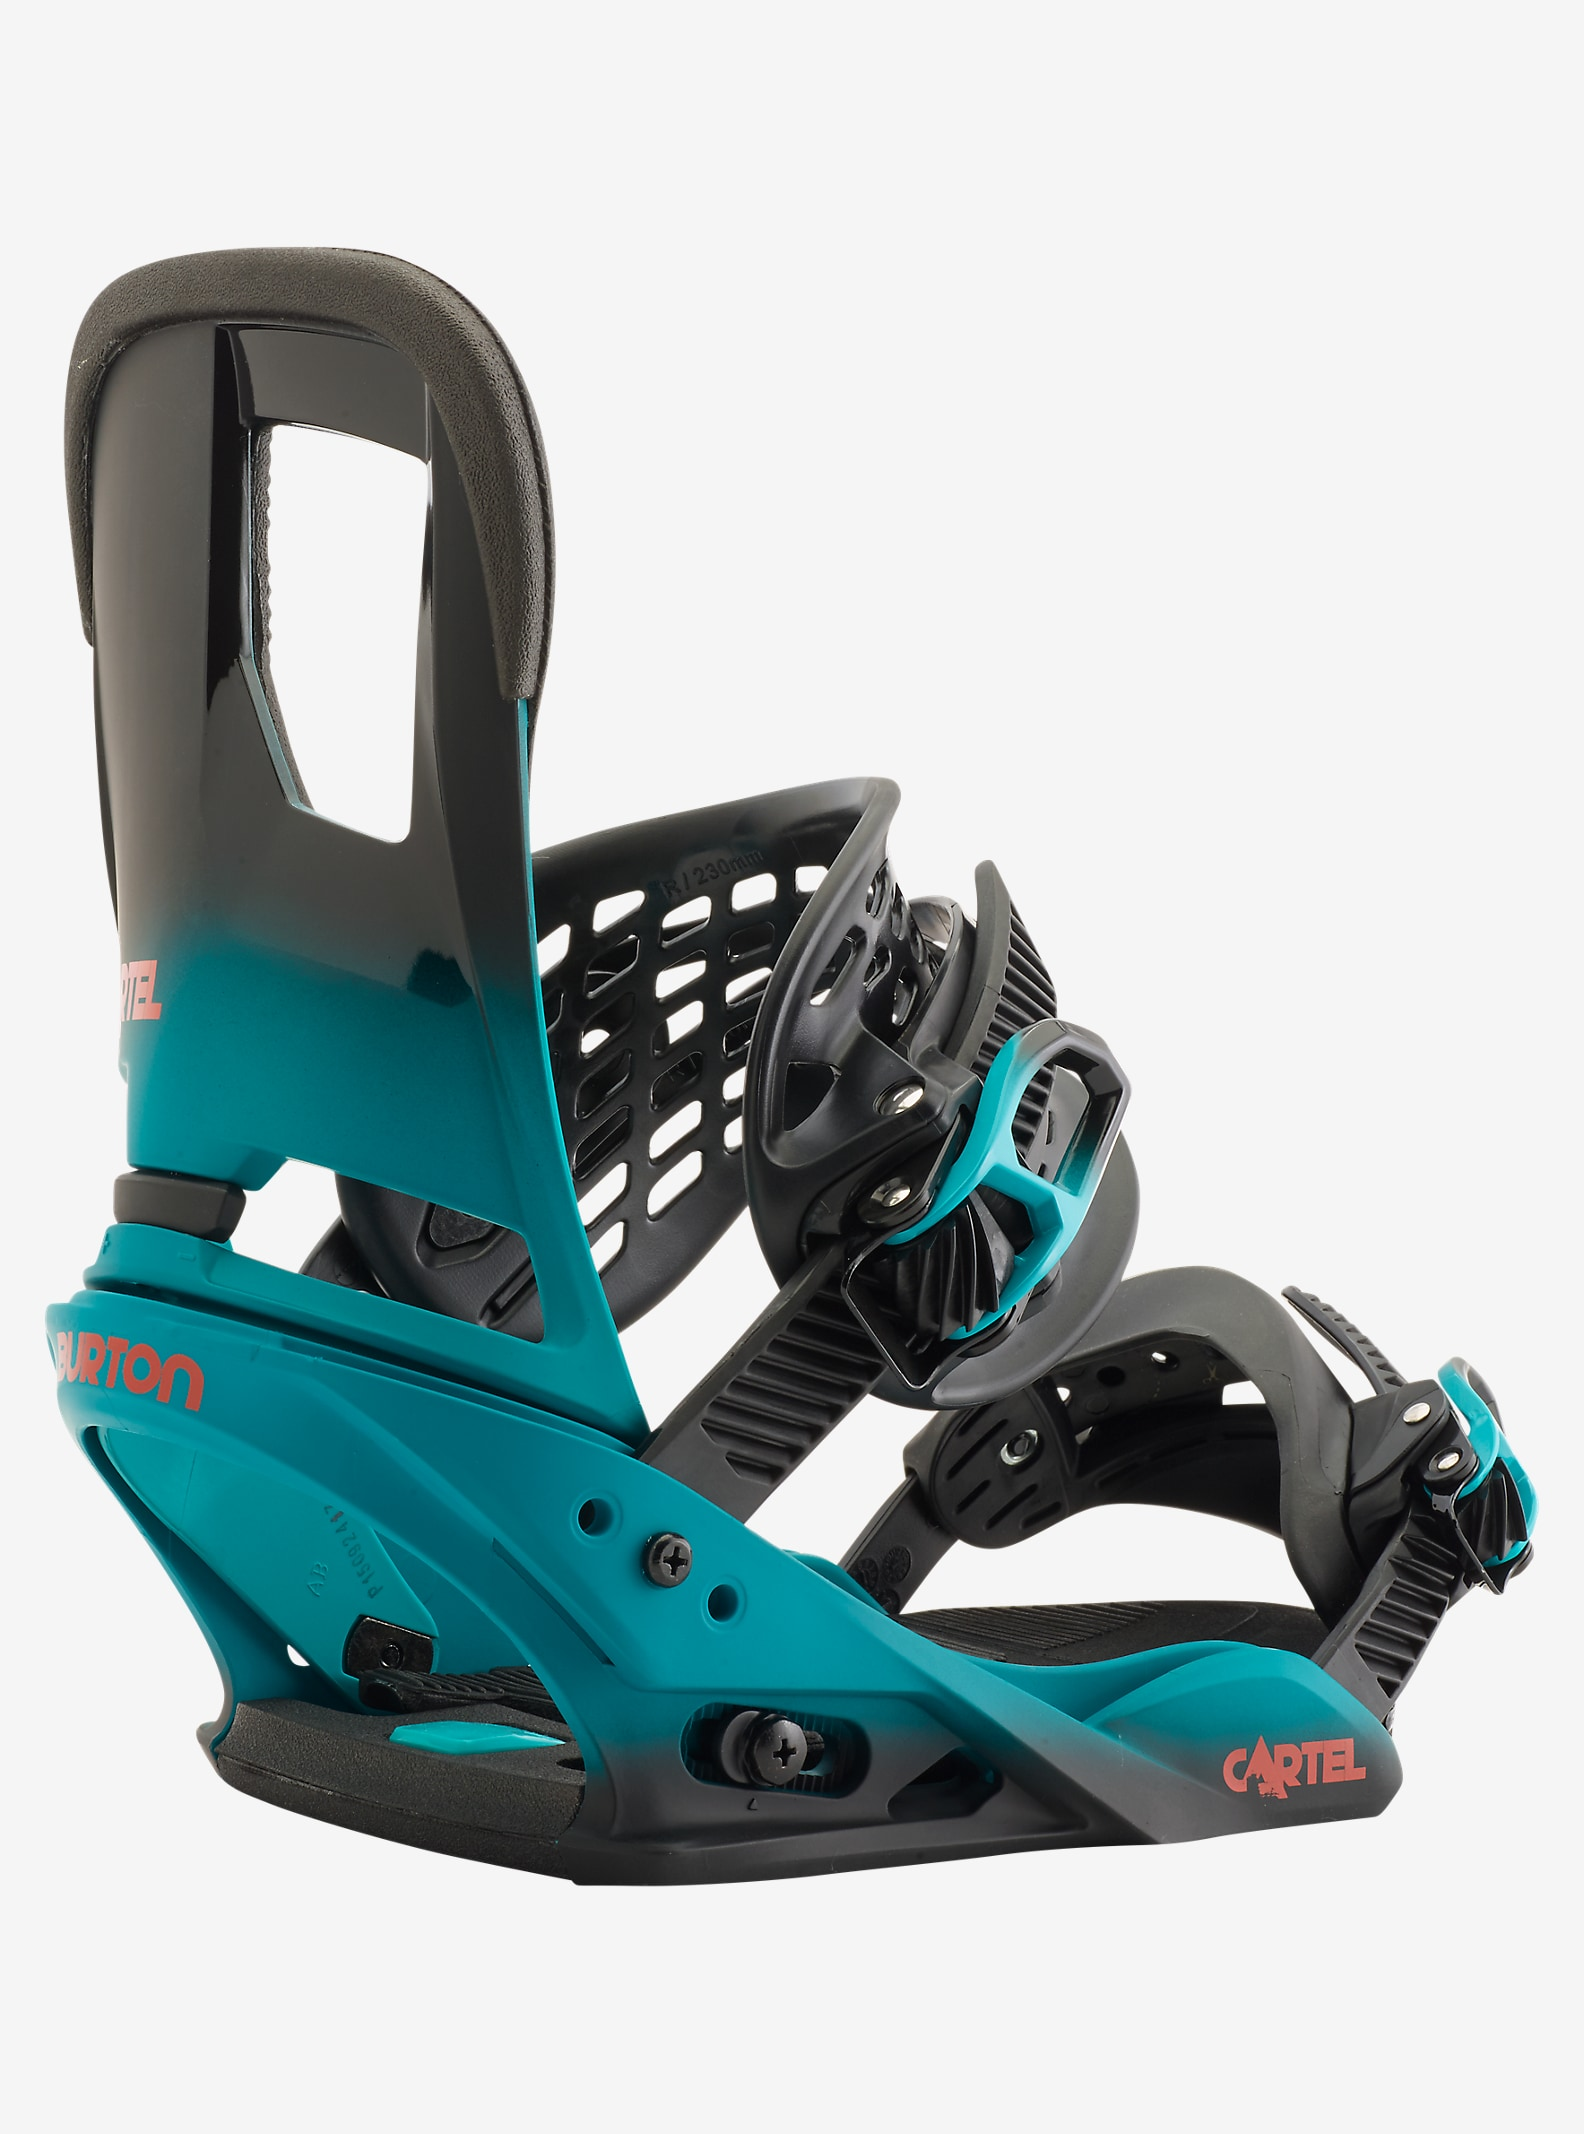 Burton Cartel Snowboard Binding shown in Teal Fade